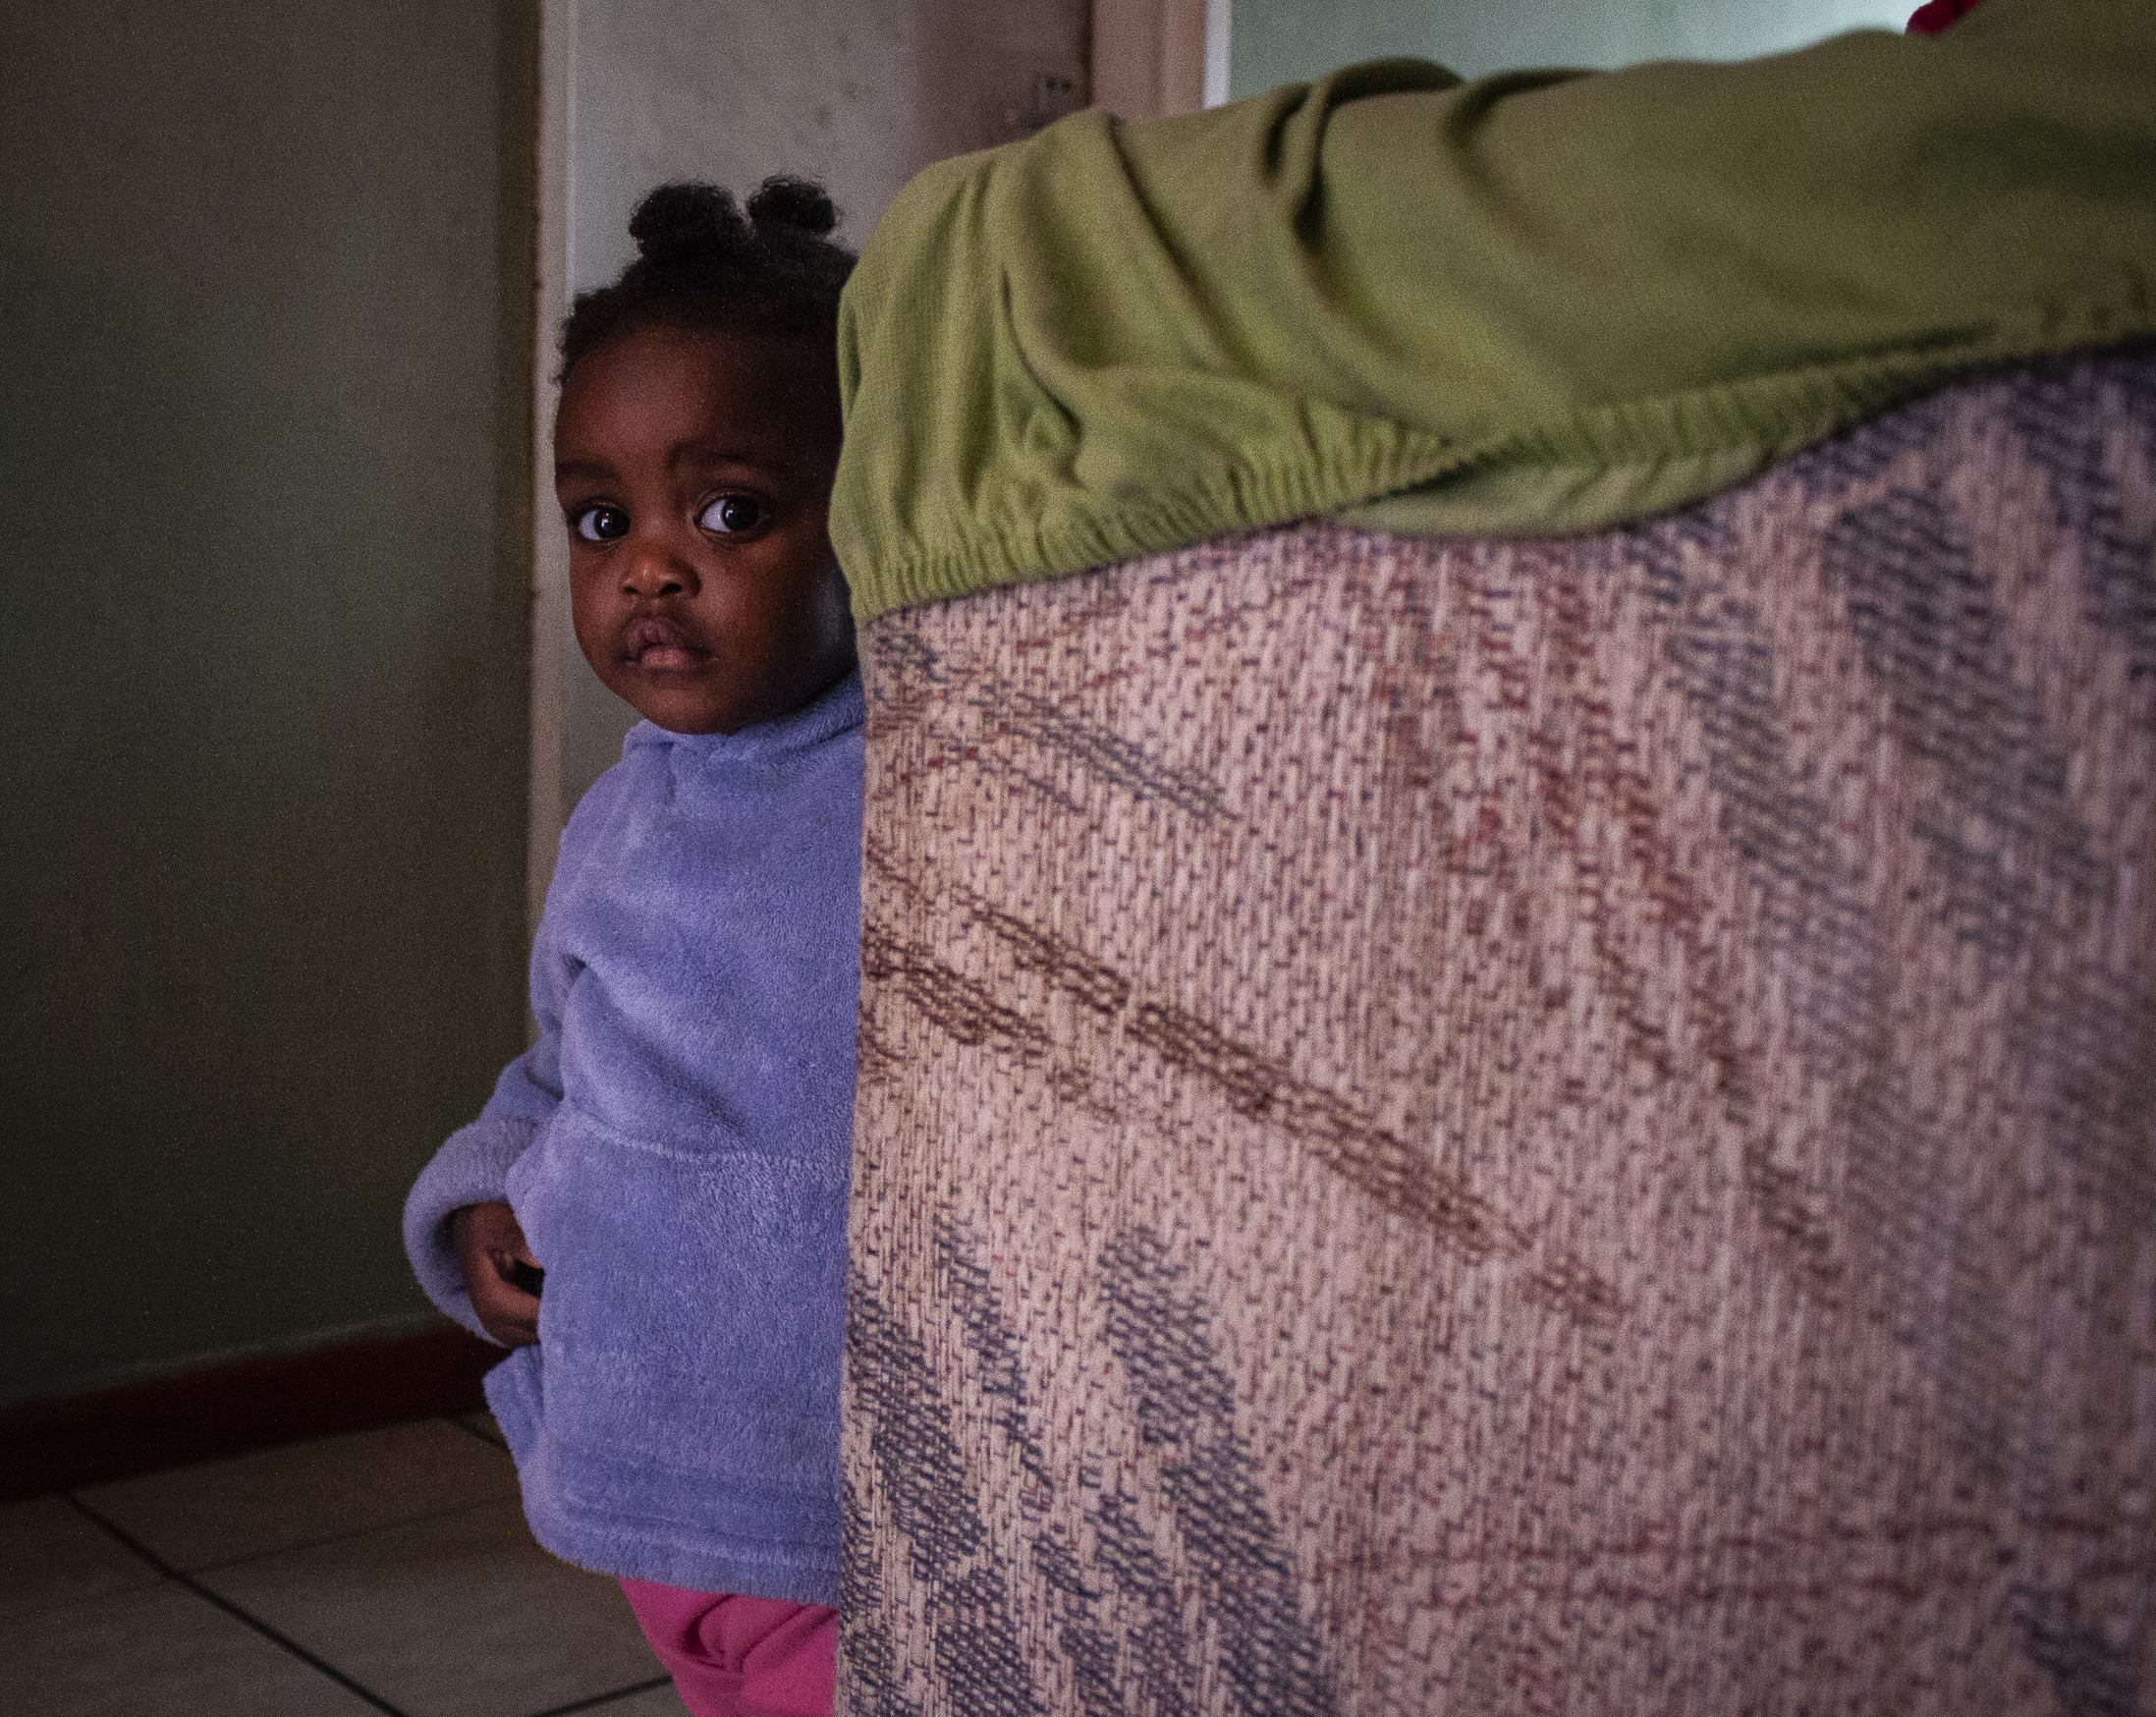 Baby girl at home. Suggested Credit Quentin Pichon/ Scalabrini